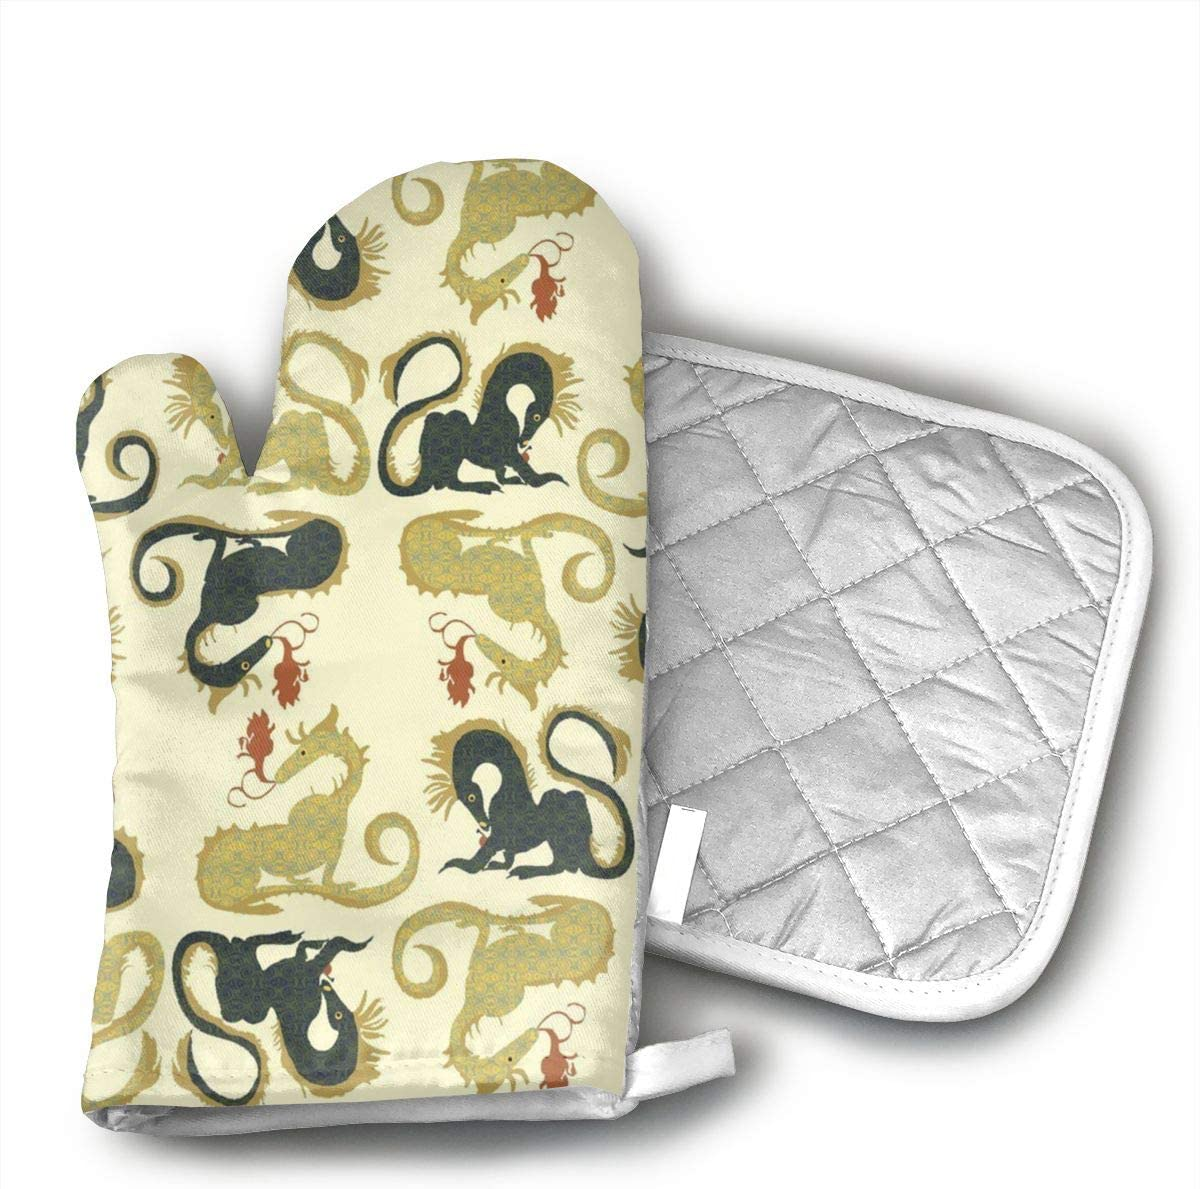 HGUIDHG Golden Dragons Patterned Oven Mitts+Insulated Square Mat,Heat Resistant Kitchen Gloves Soft Insulated Deep Pockets, Non-Slip Handles